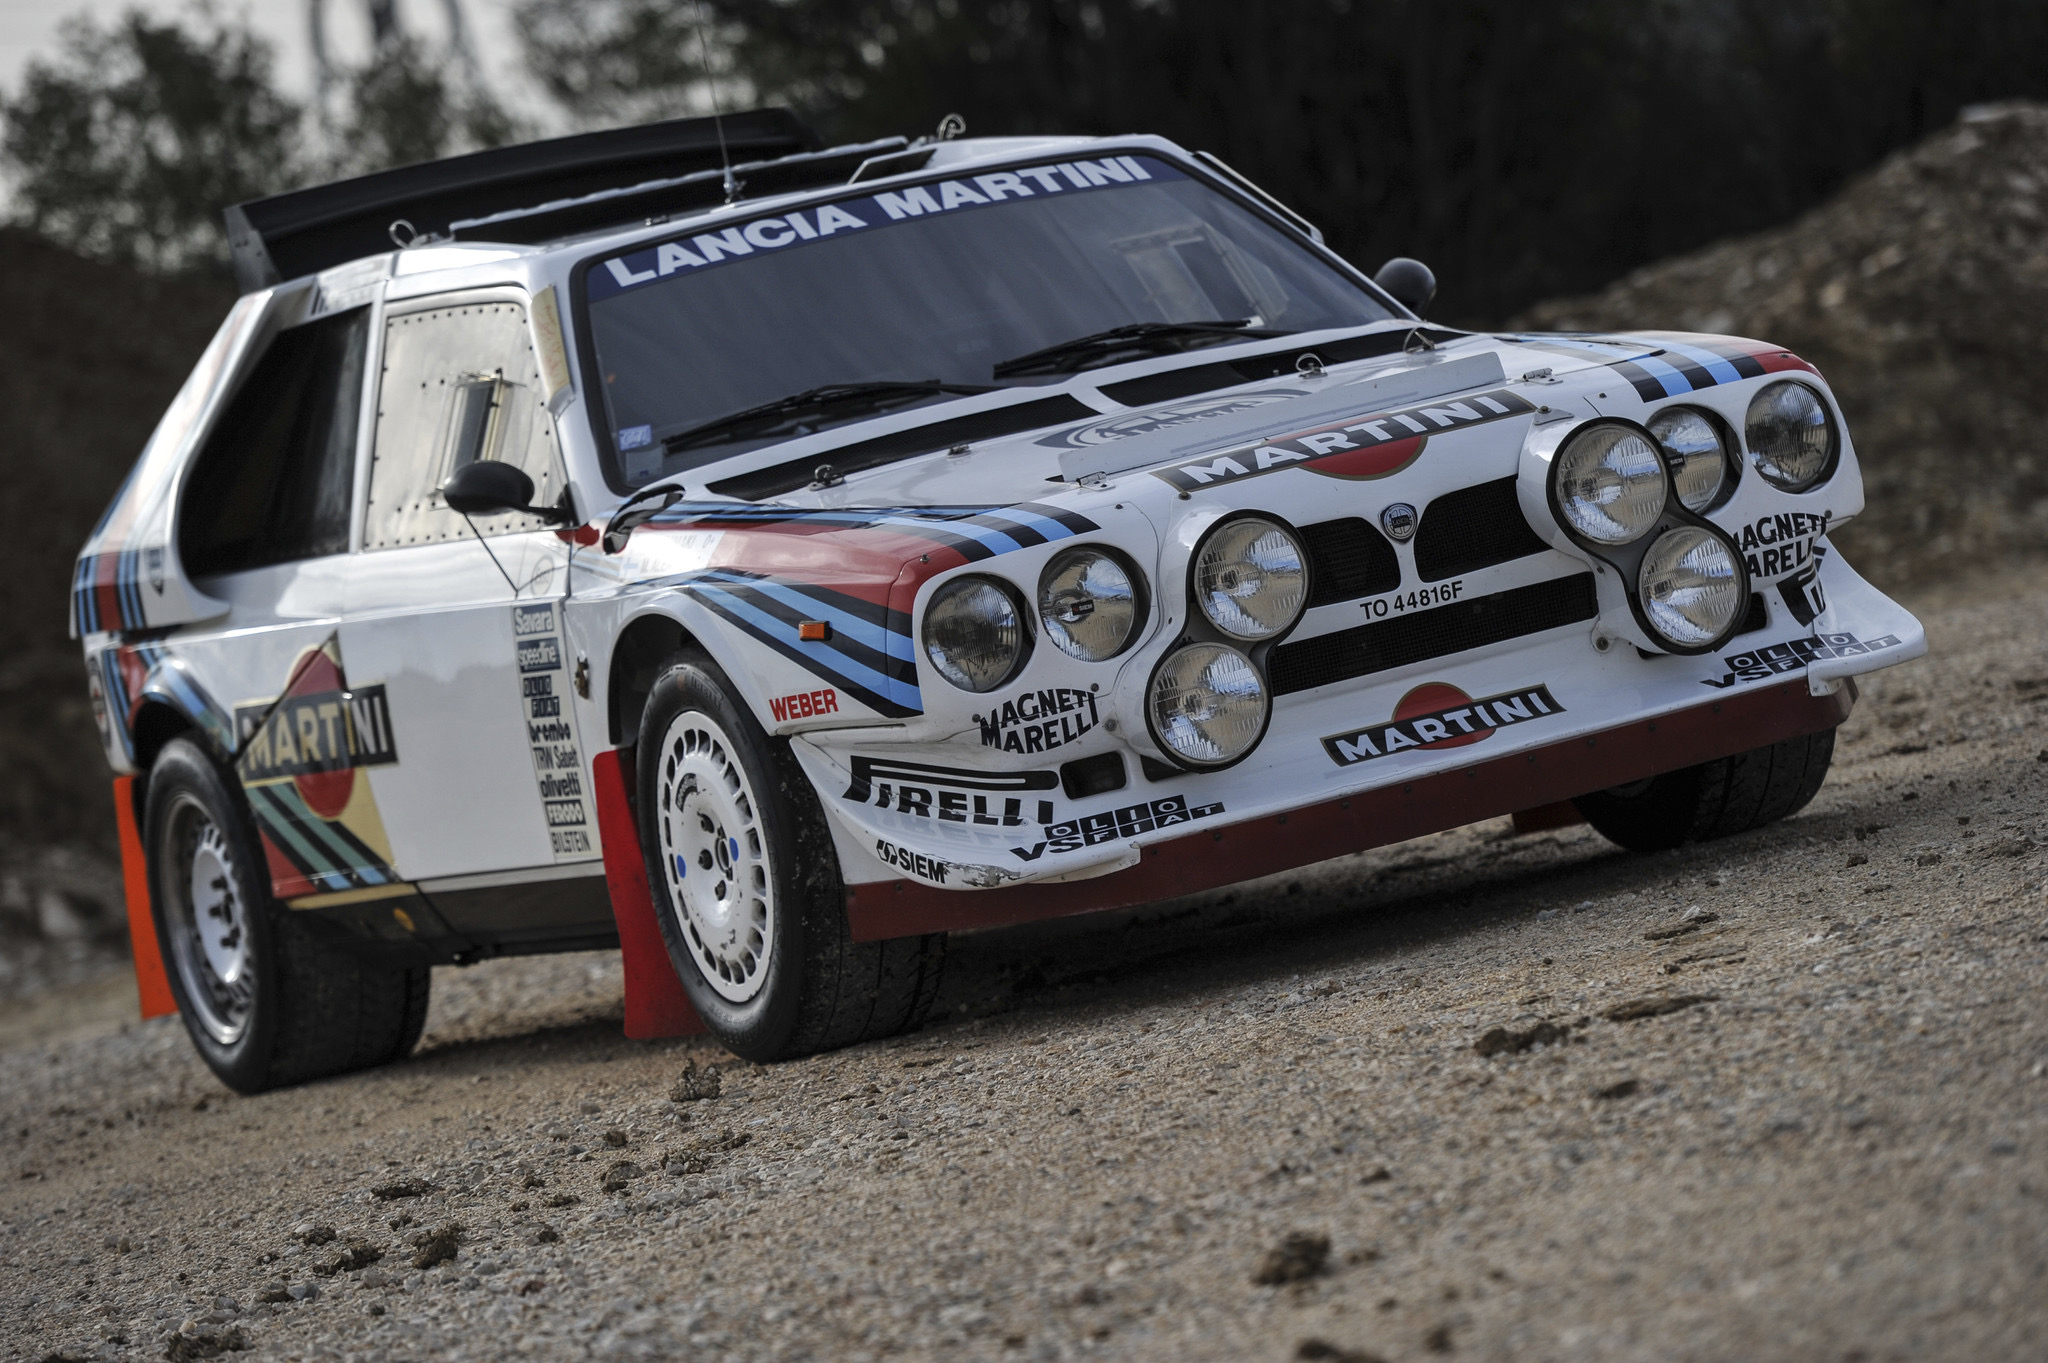 Works\' rally cars featured on Bonhams\' Paris docket - ClassicCars ...